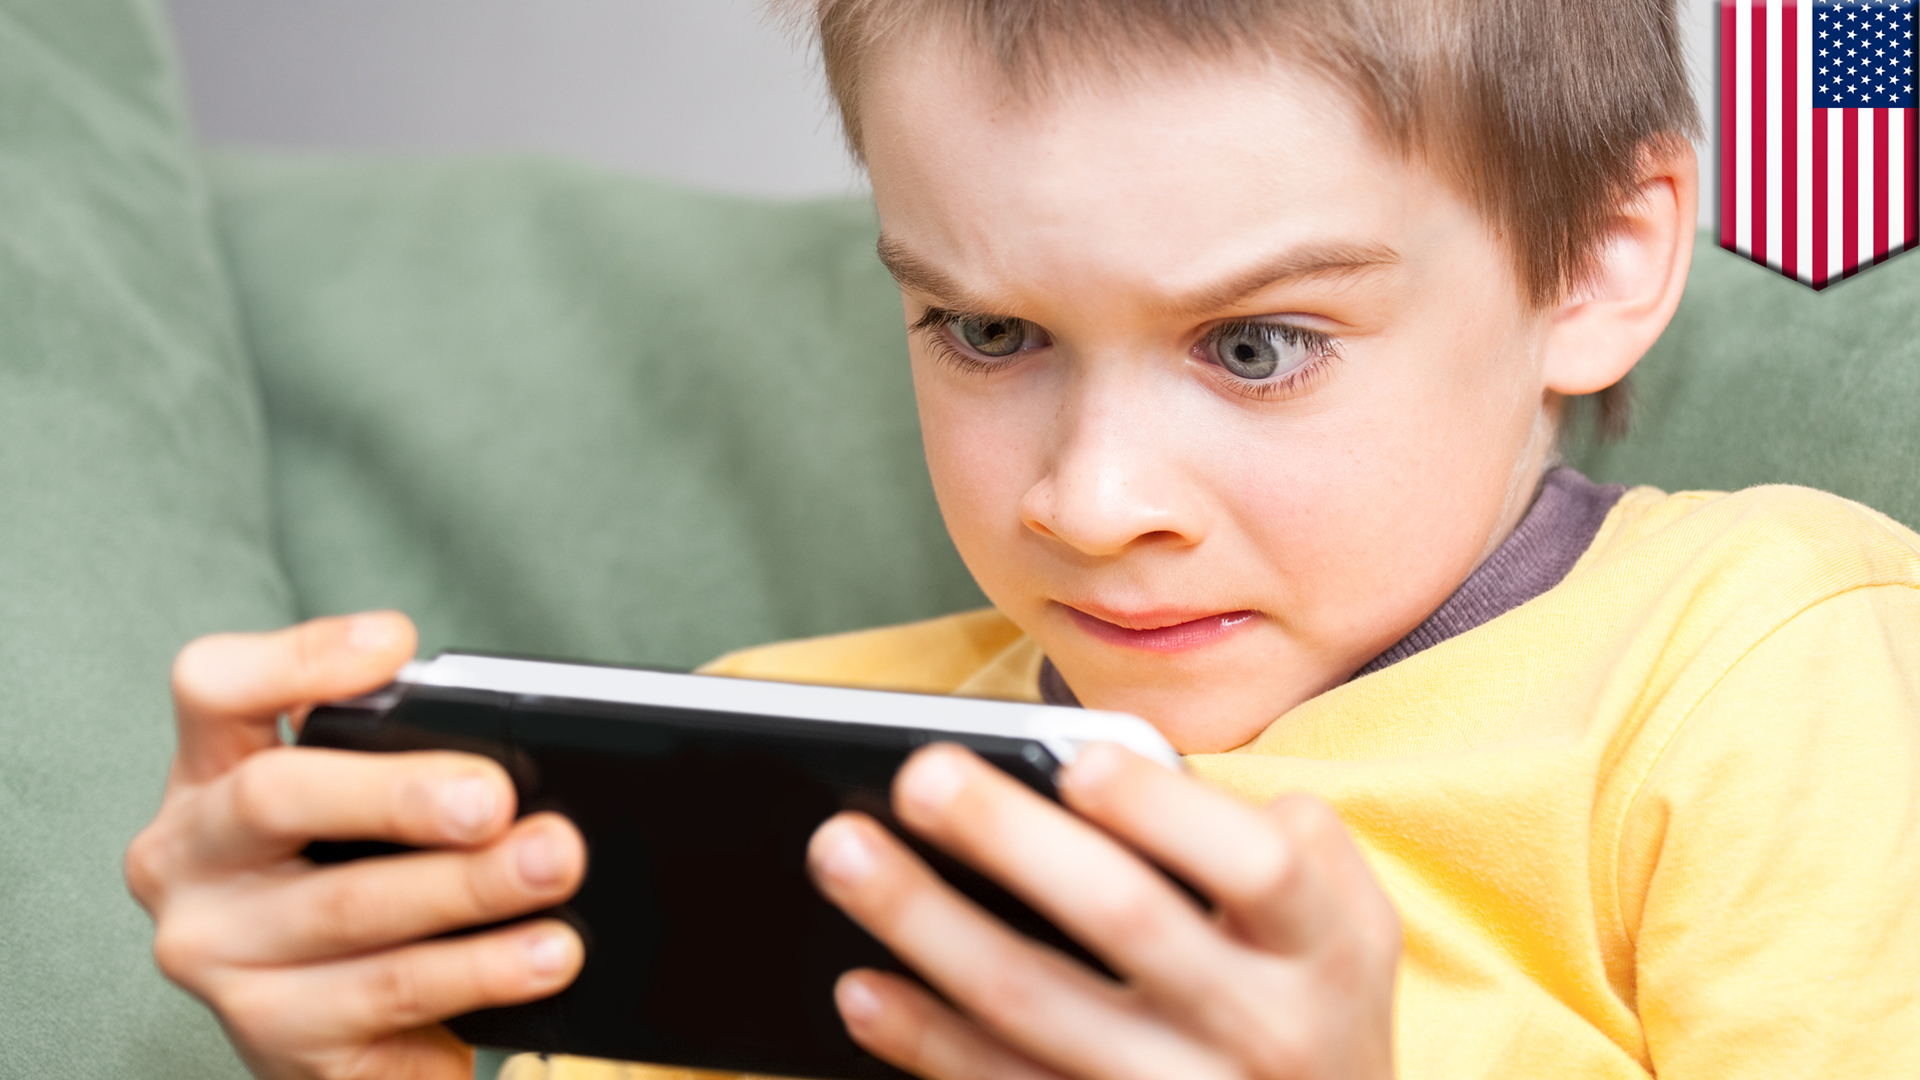 Excessive screen time linked to anxiety, depression in kids